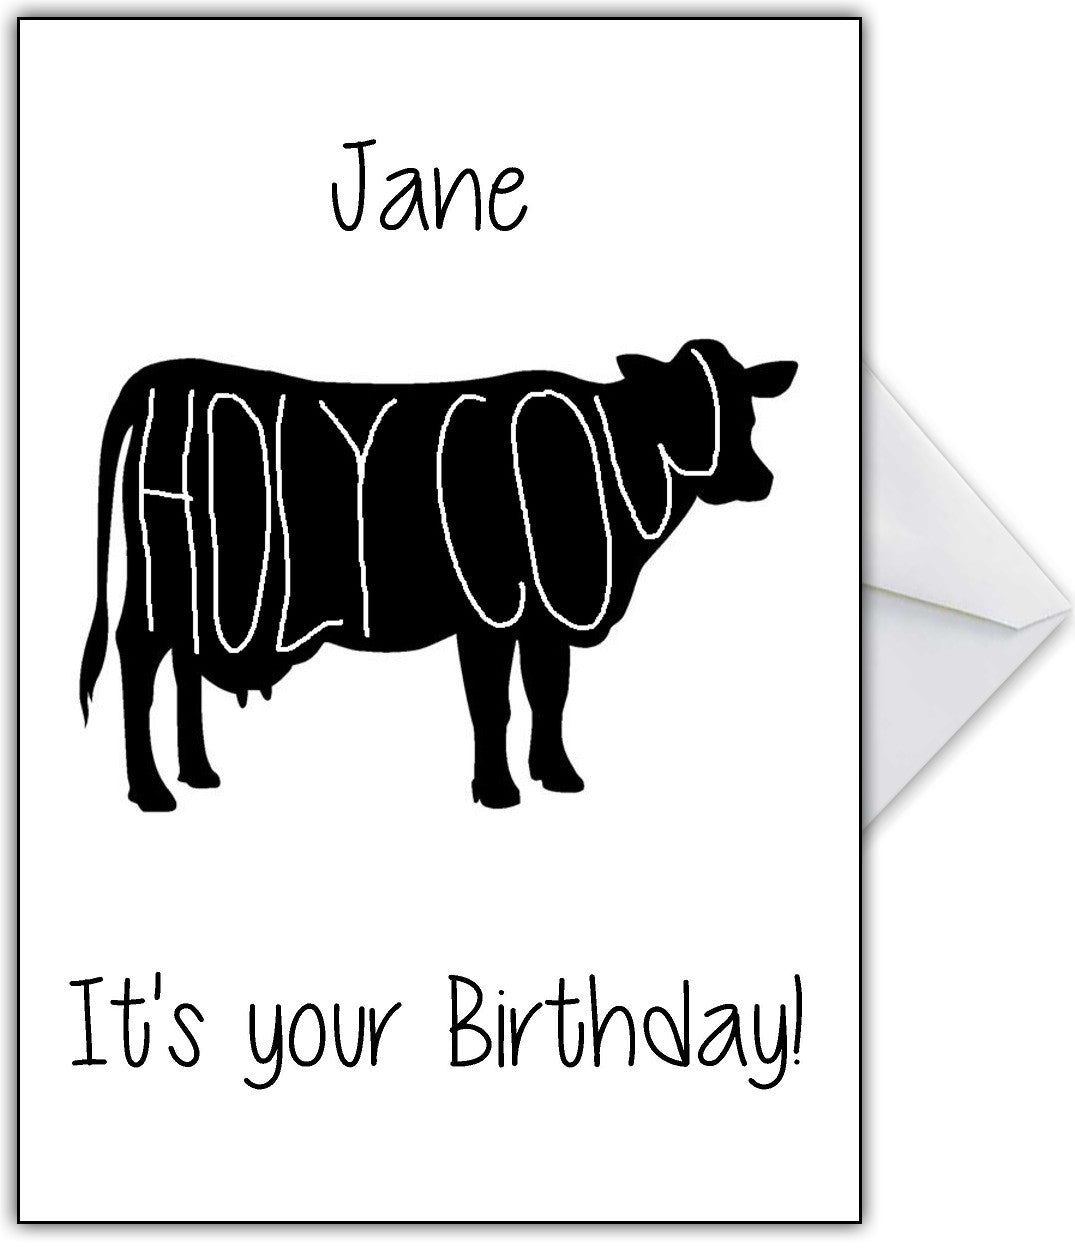 Naughty birthday card holy cows your birthday that card shop naughty birthday card holy cows your birthday bookmarktalkfo Images